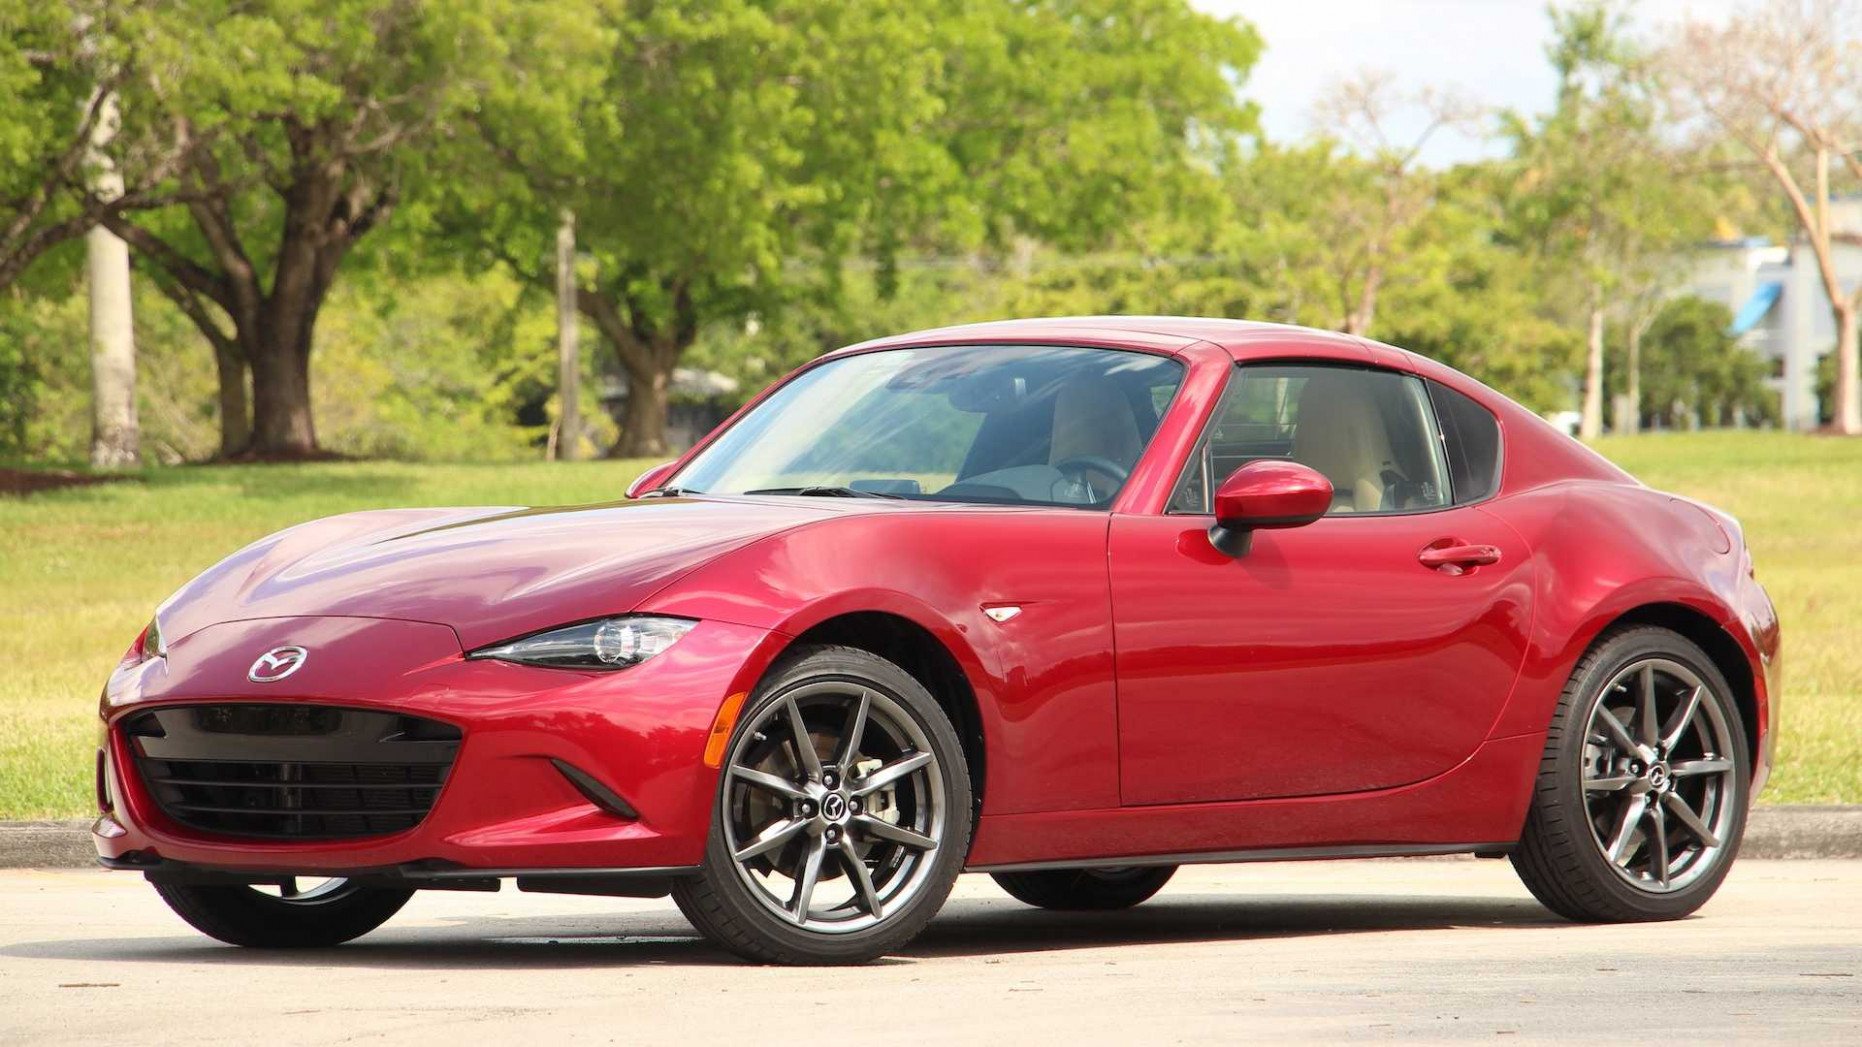 6 Mazda MX-6 Miata Reportedly Sees Price Increase Of Up To $6,6